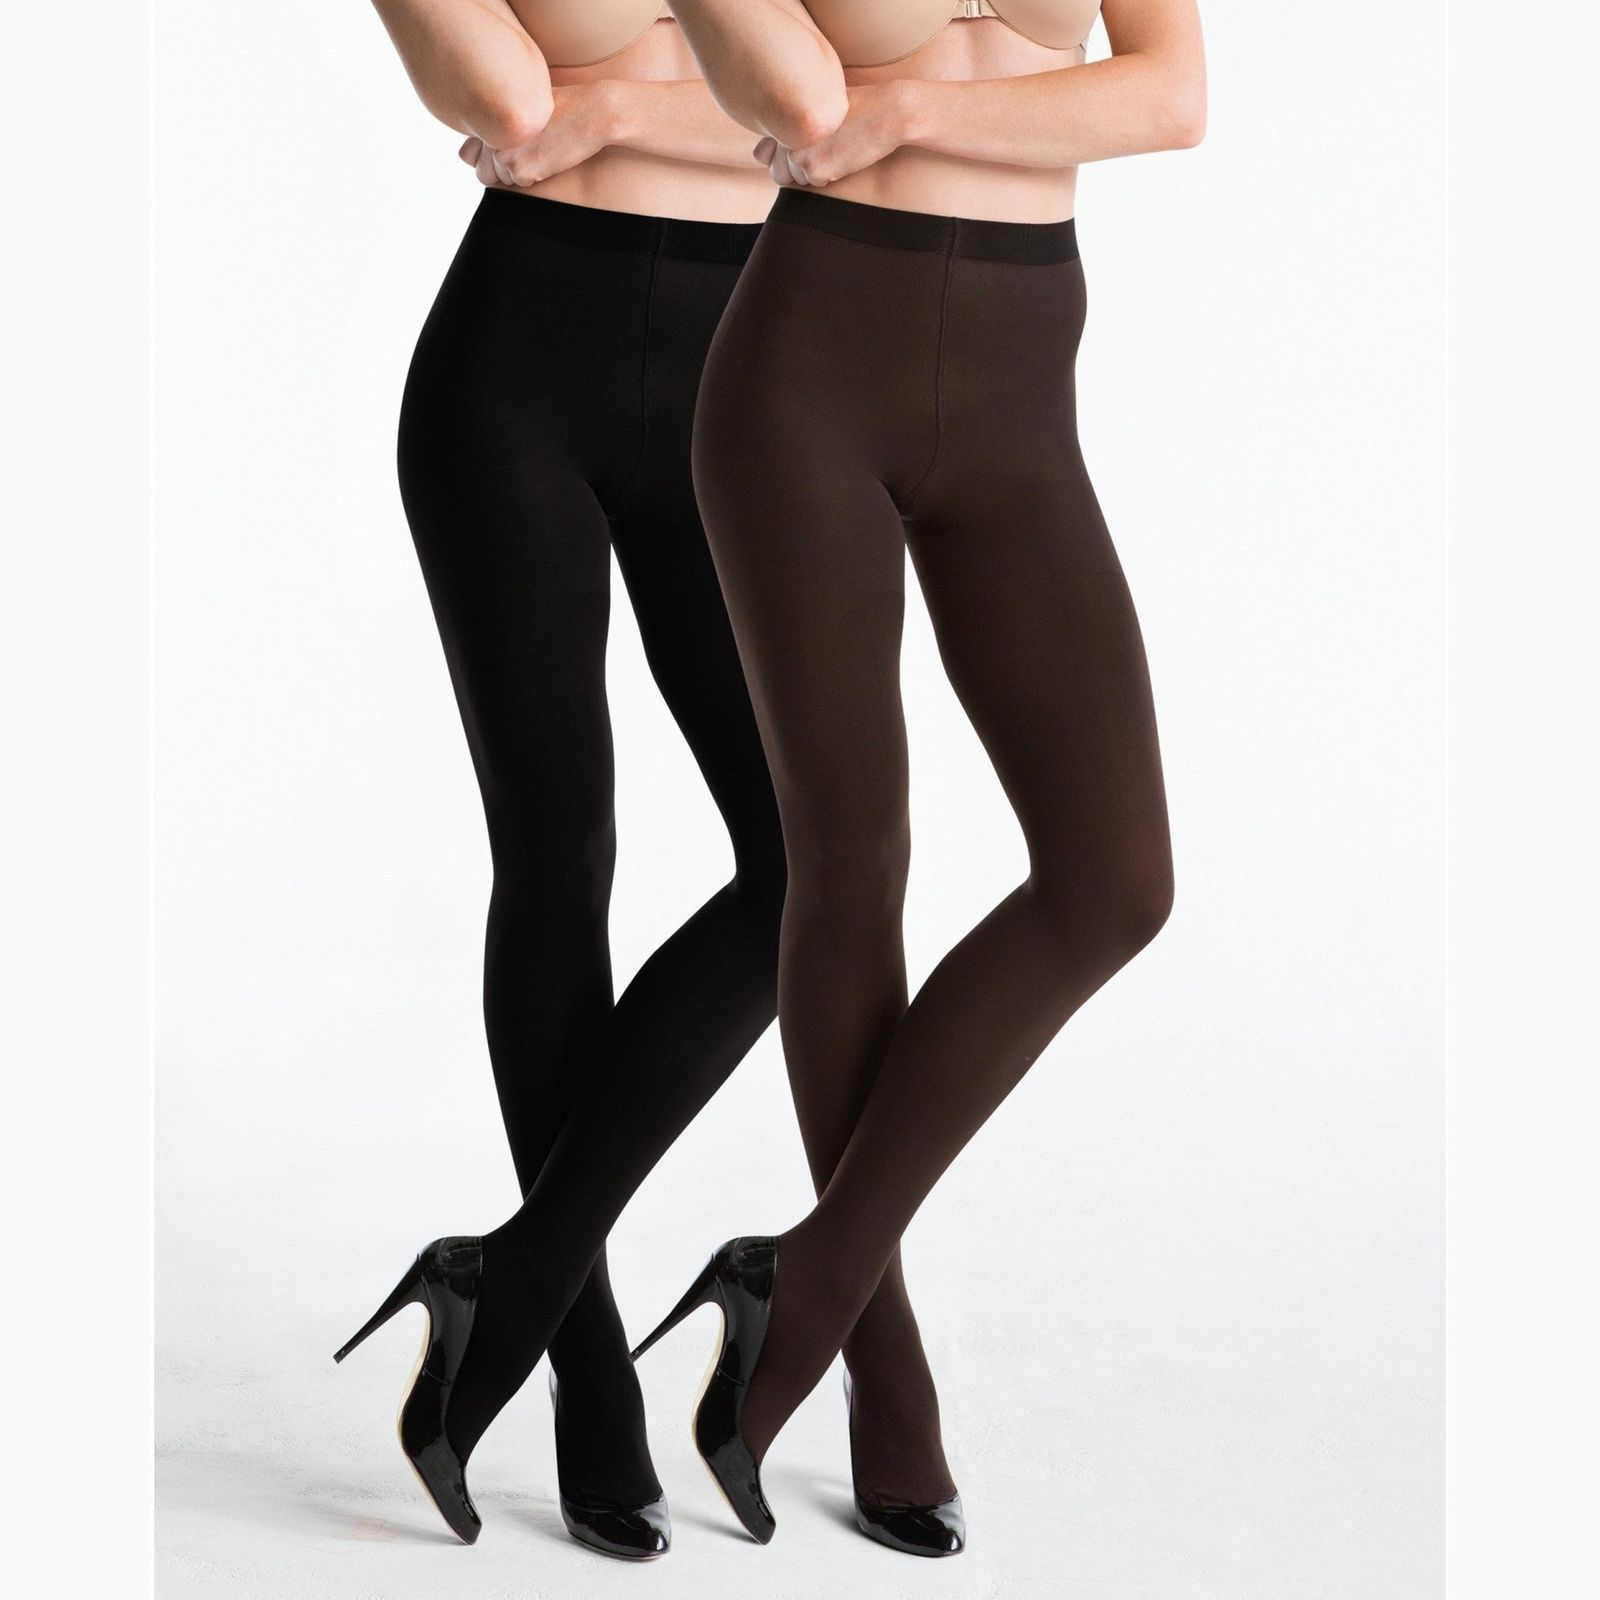 130c3e0afa3132 Details about Star Power SPANX Center Stage Reversible Shaping Tights  Backdrop Black Brown A